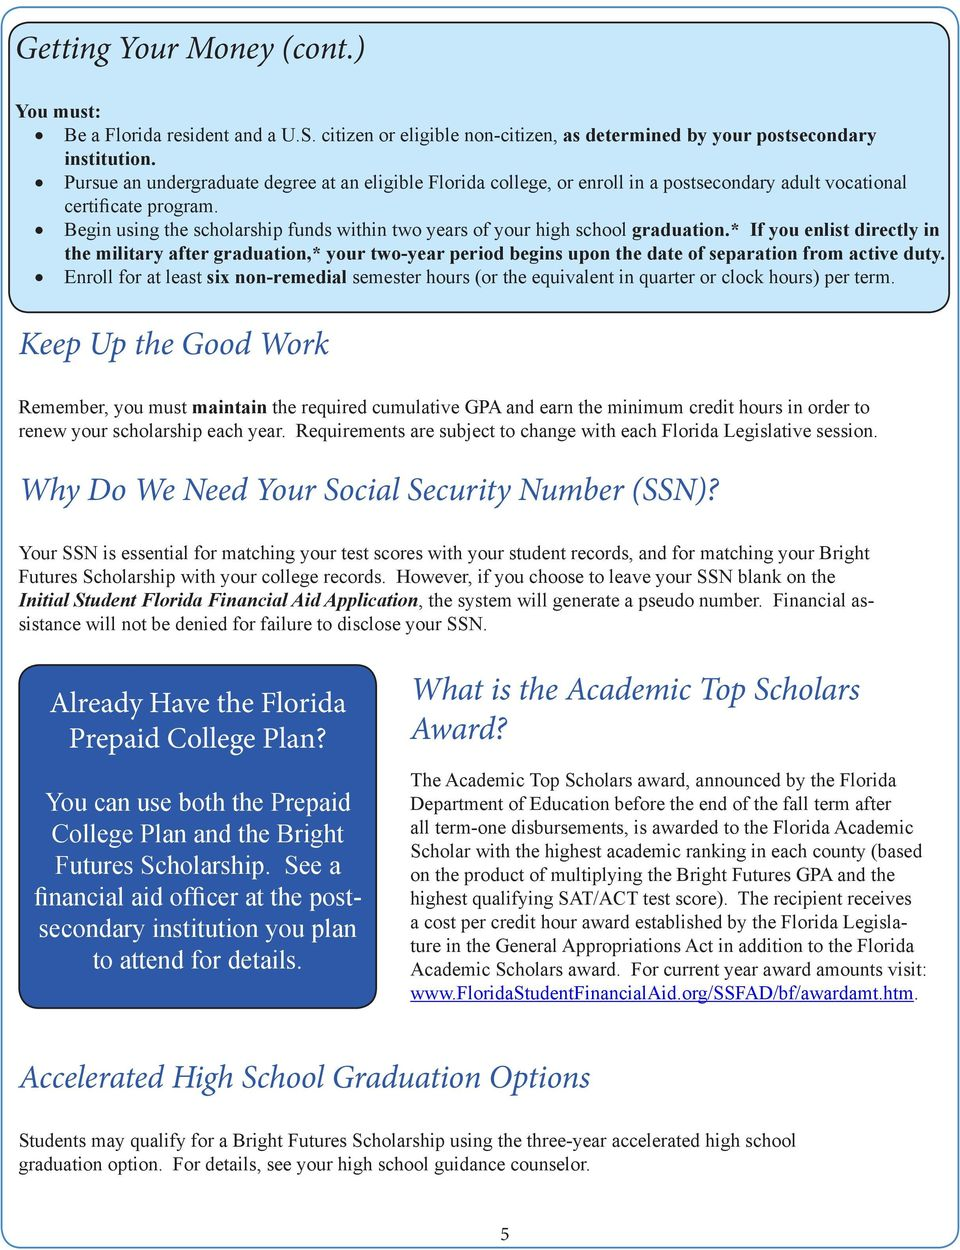 Begin using the scholarship funds within two years of your high school graduation.